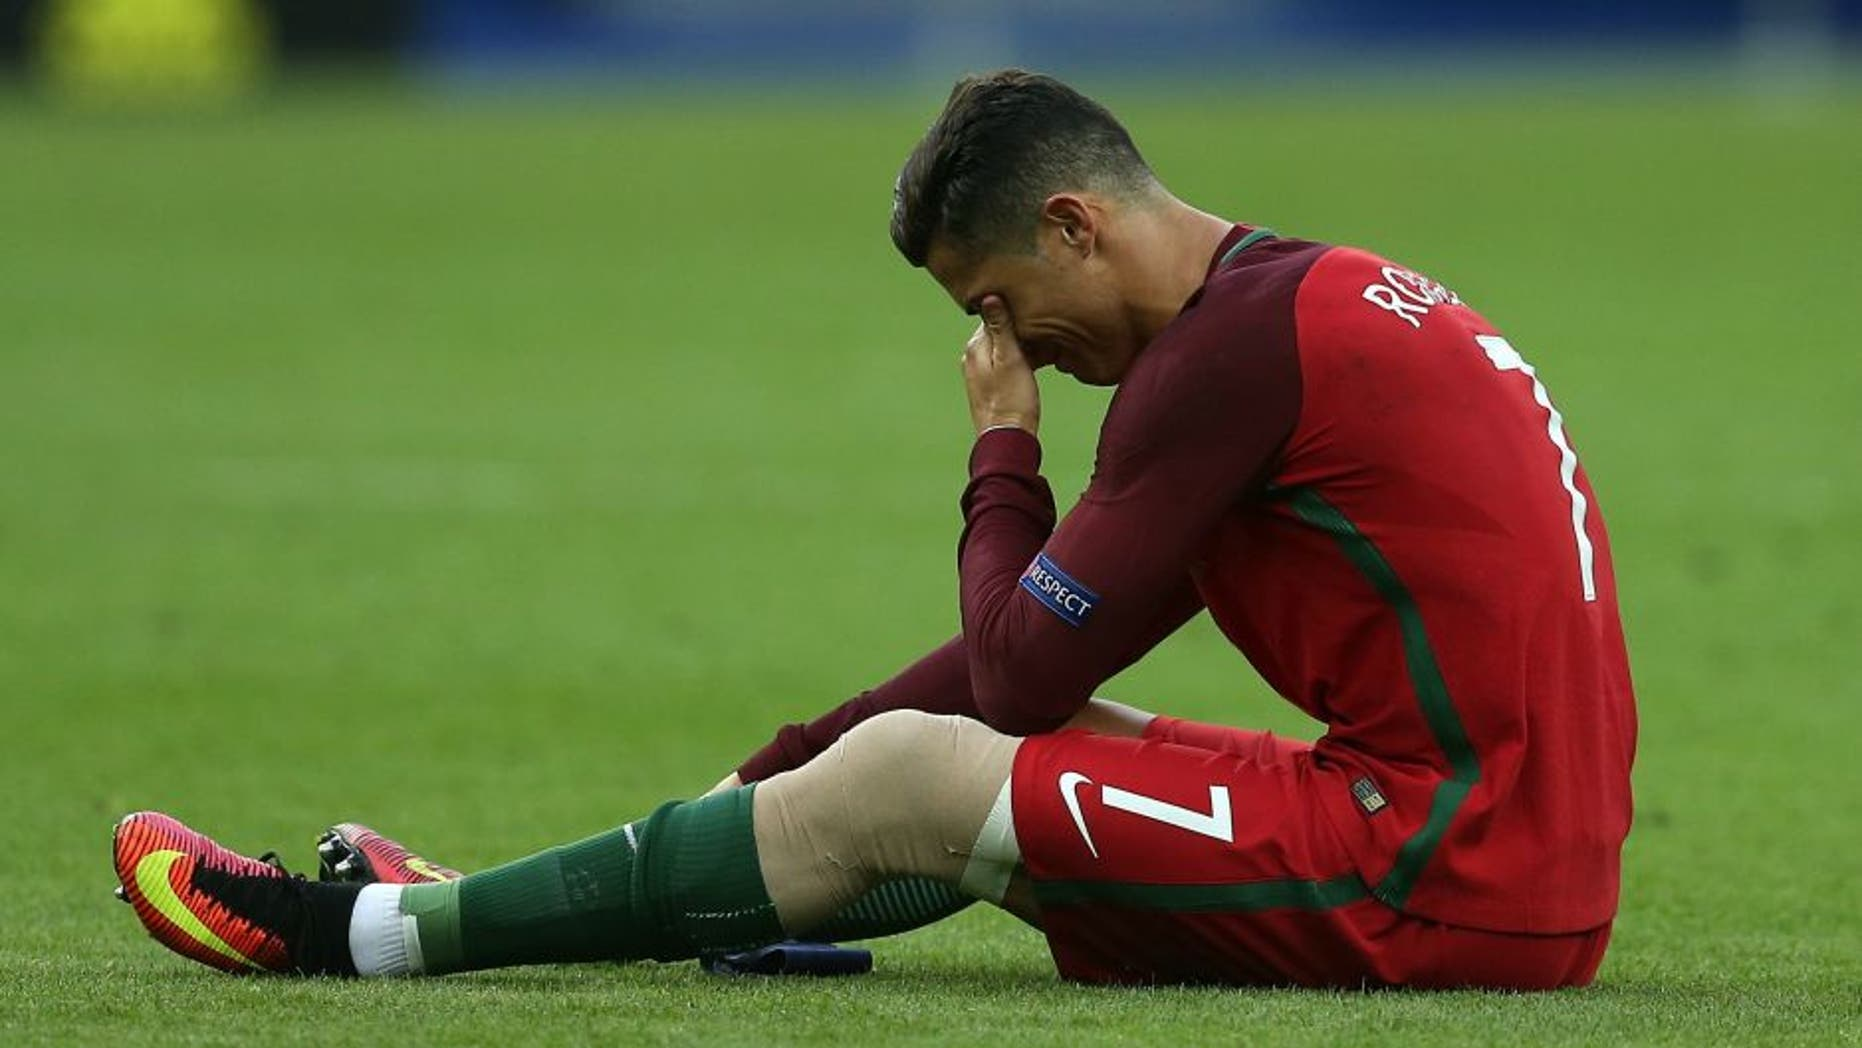 PARIS, FRANCE - JULY 10: Cristiano Ronaldo of Portugal lies injured during the UEFA Euro 2016 Final match between Portugal and France at Stade de France on July 10, 2016 in Paris, France. (Photo by Chris Brunskill Ltd/Getty Images)